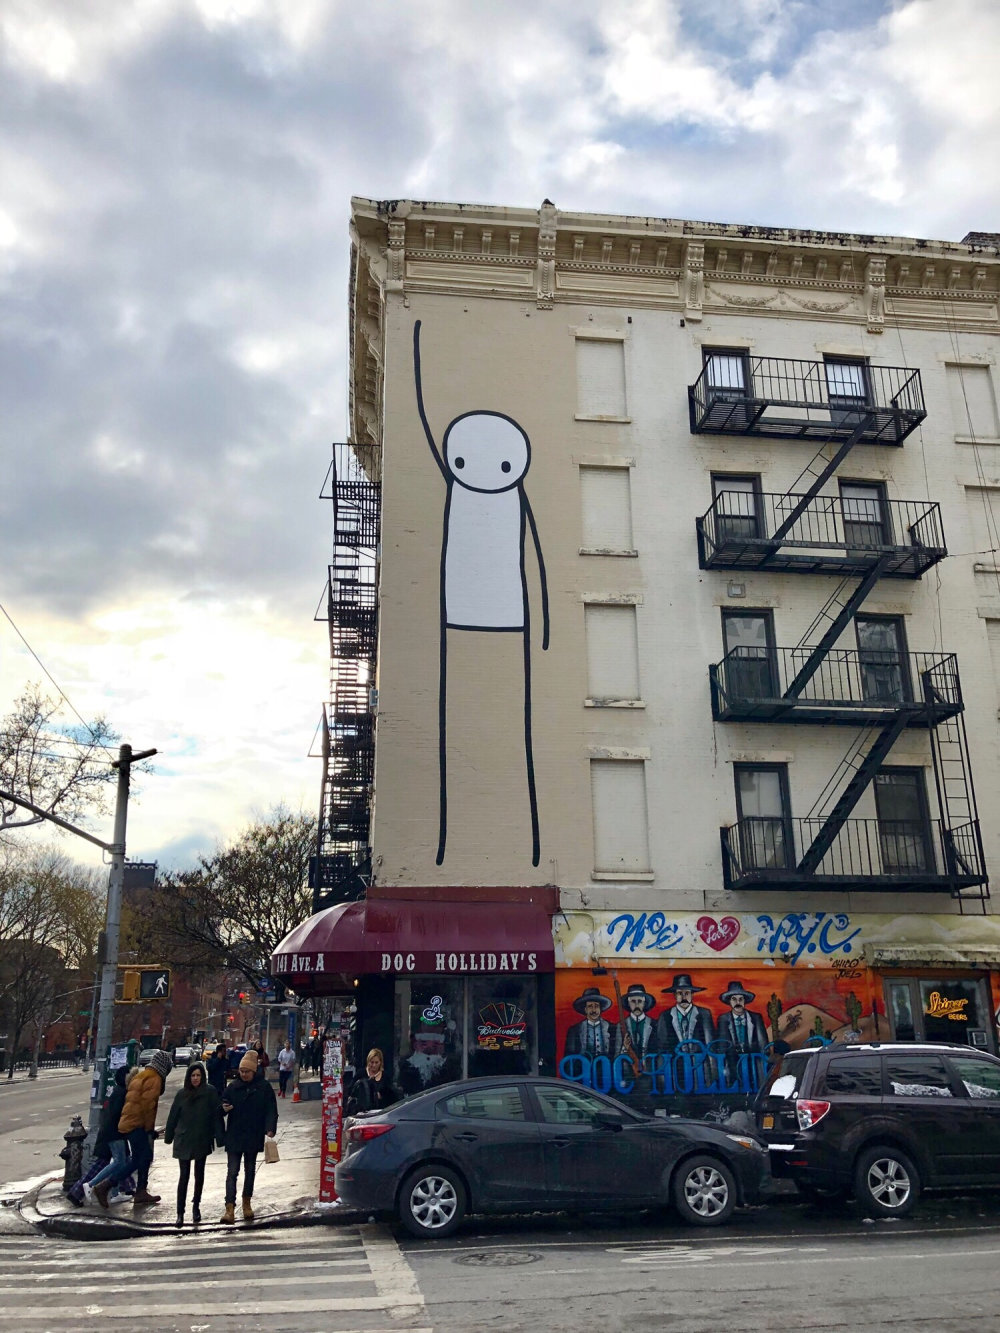 mural in New York by artist Stik